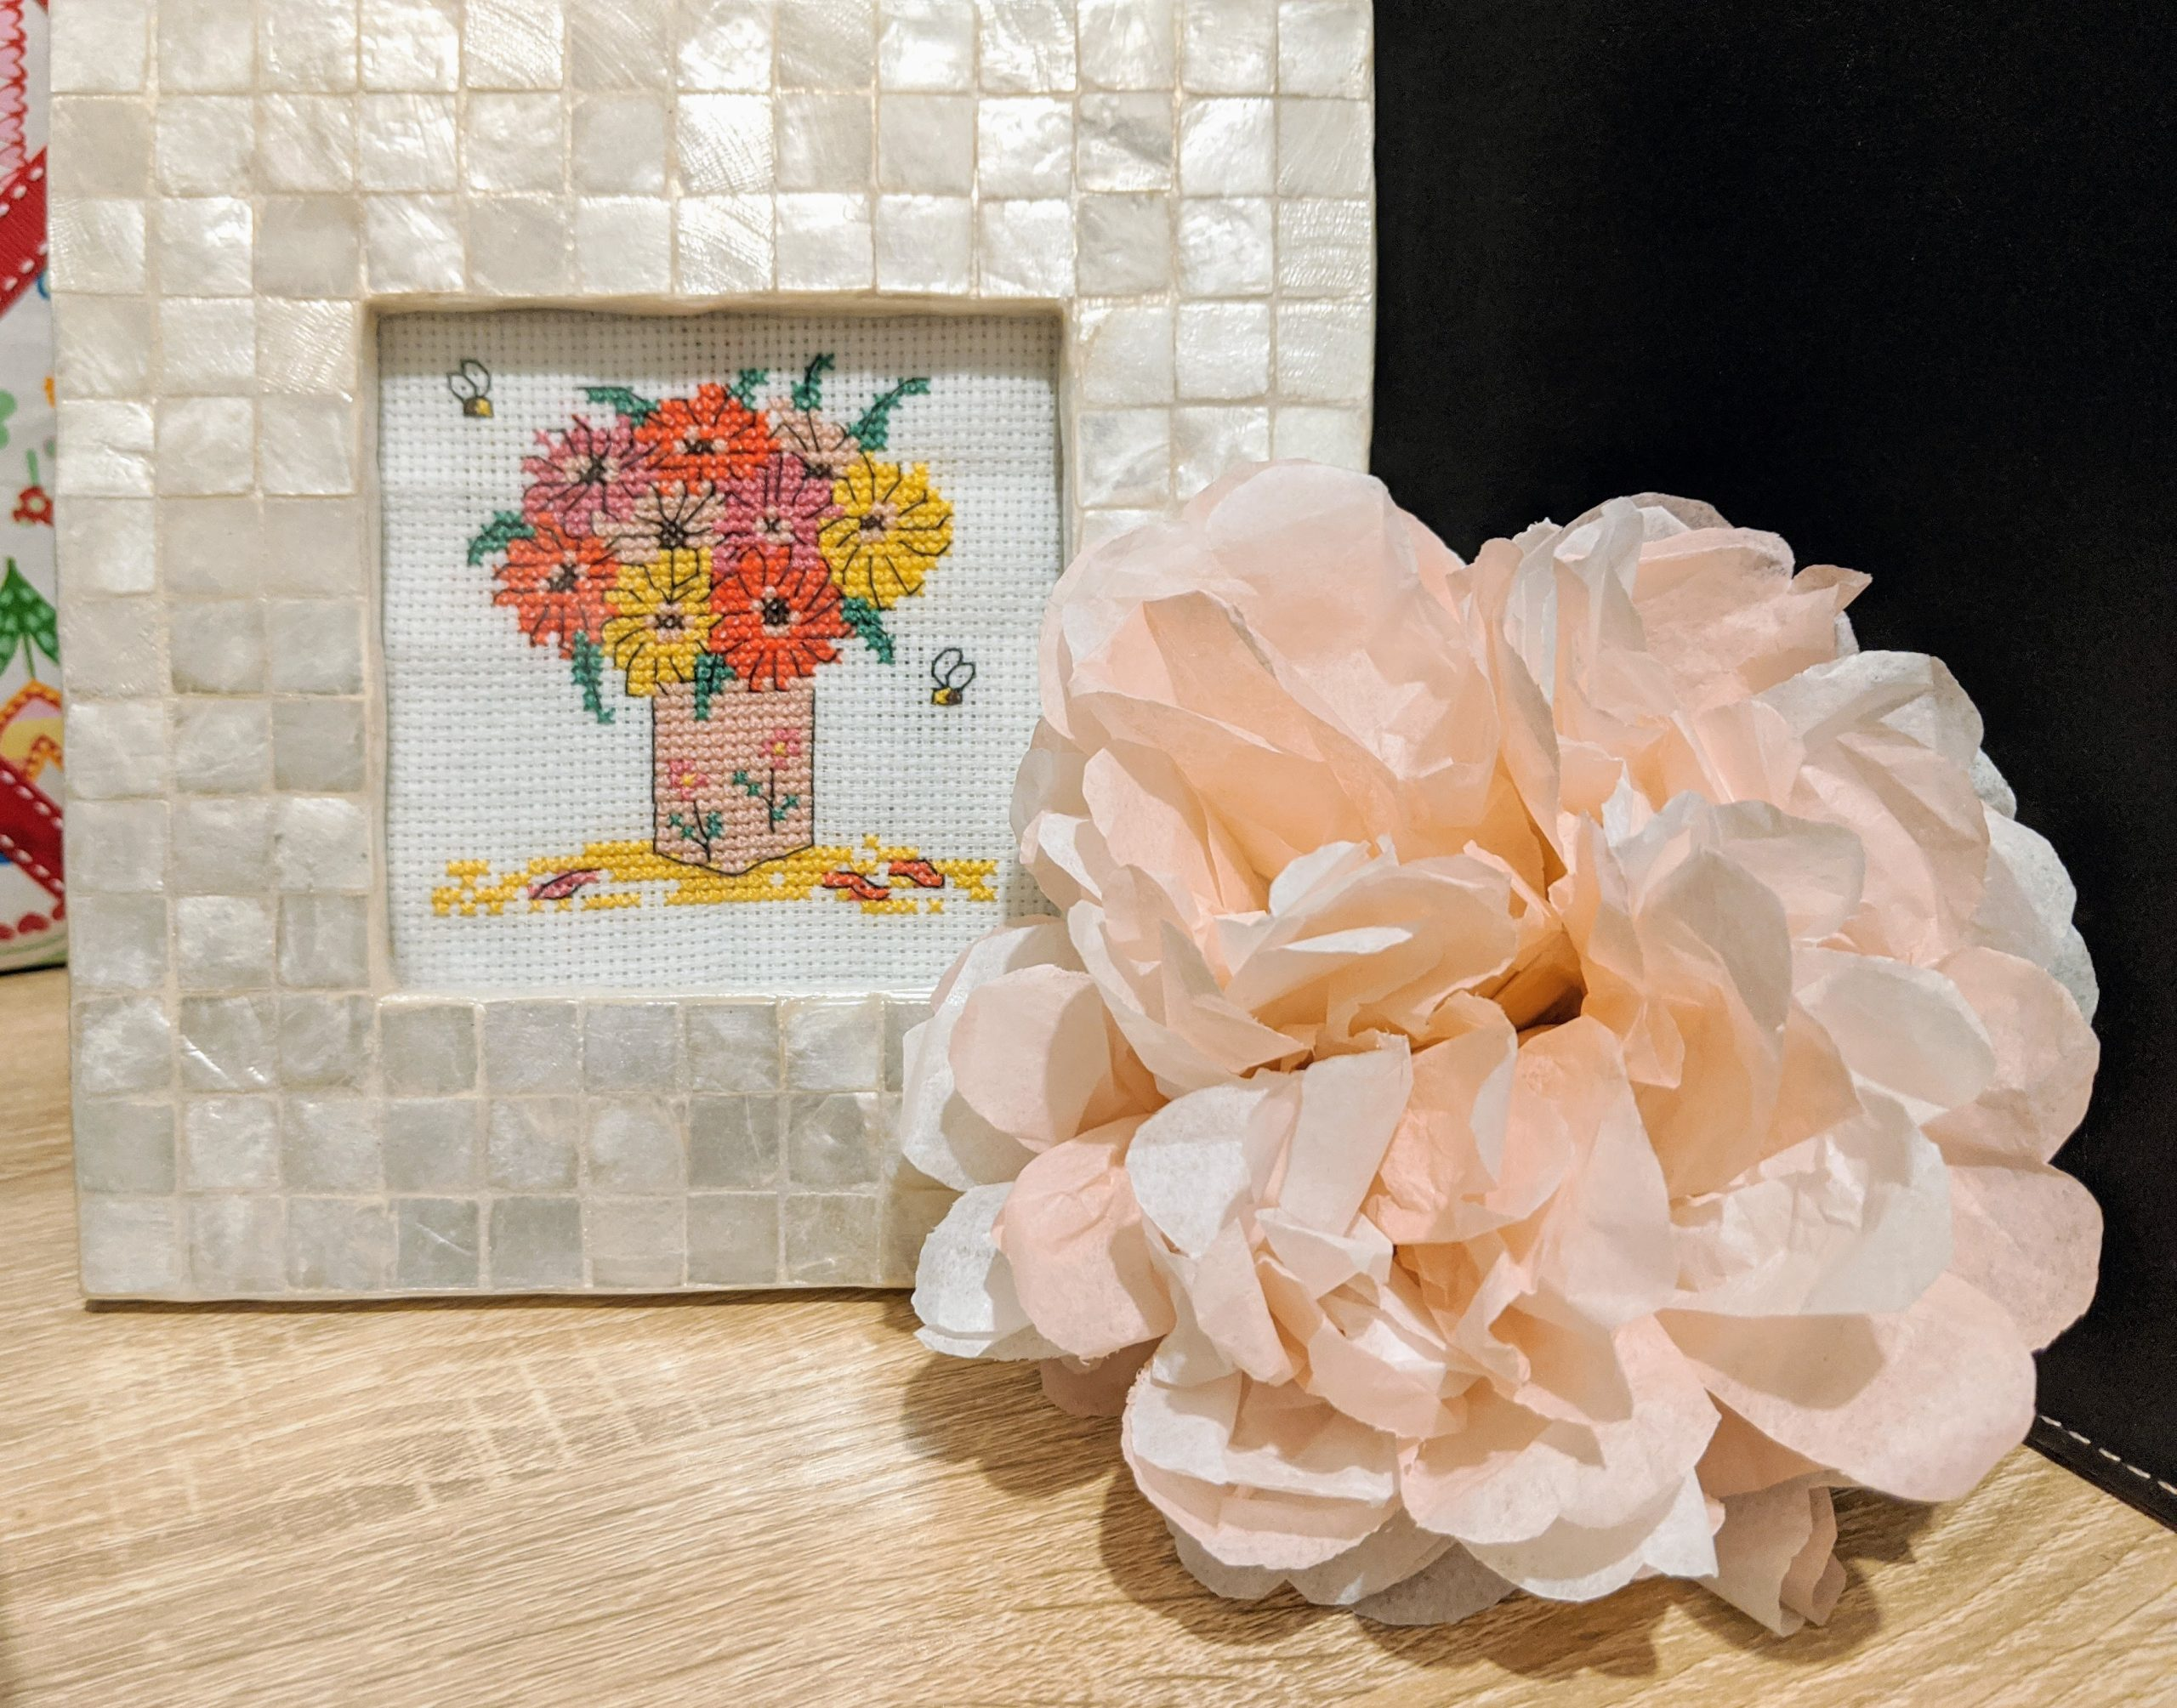 Colourful vase of flowers cross stitch